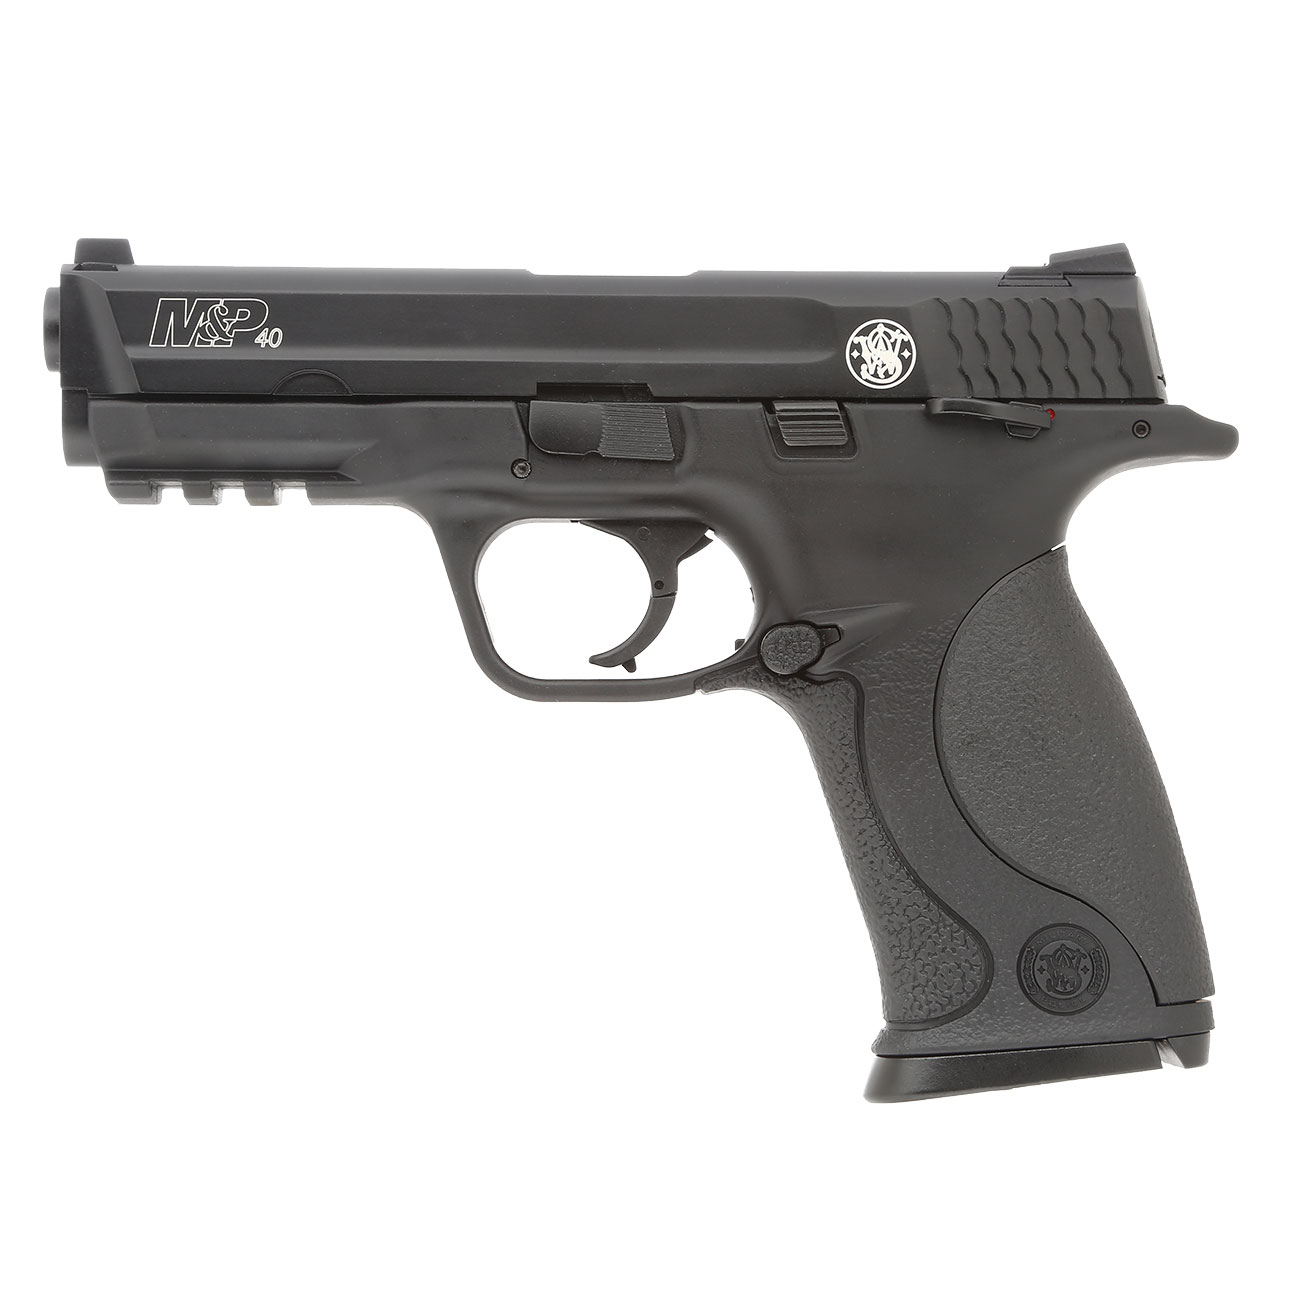 KWC Smith & Wesson M&P40 TS mit Metallschlitten CO2 BlowBack 6mm BB schwarz 1